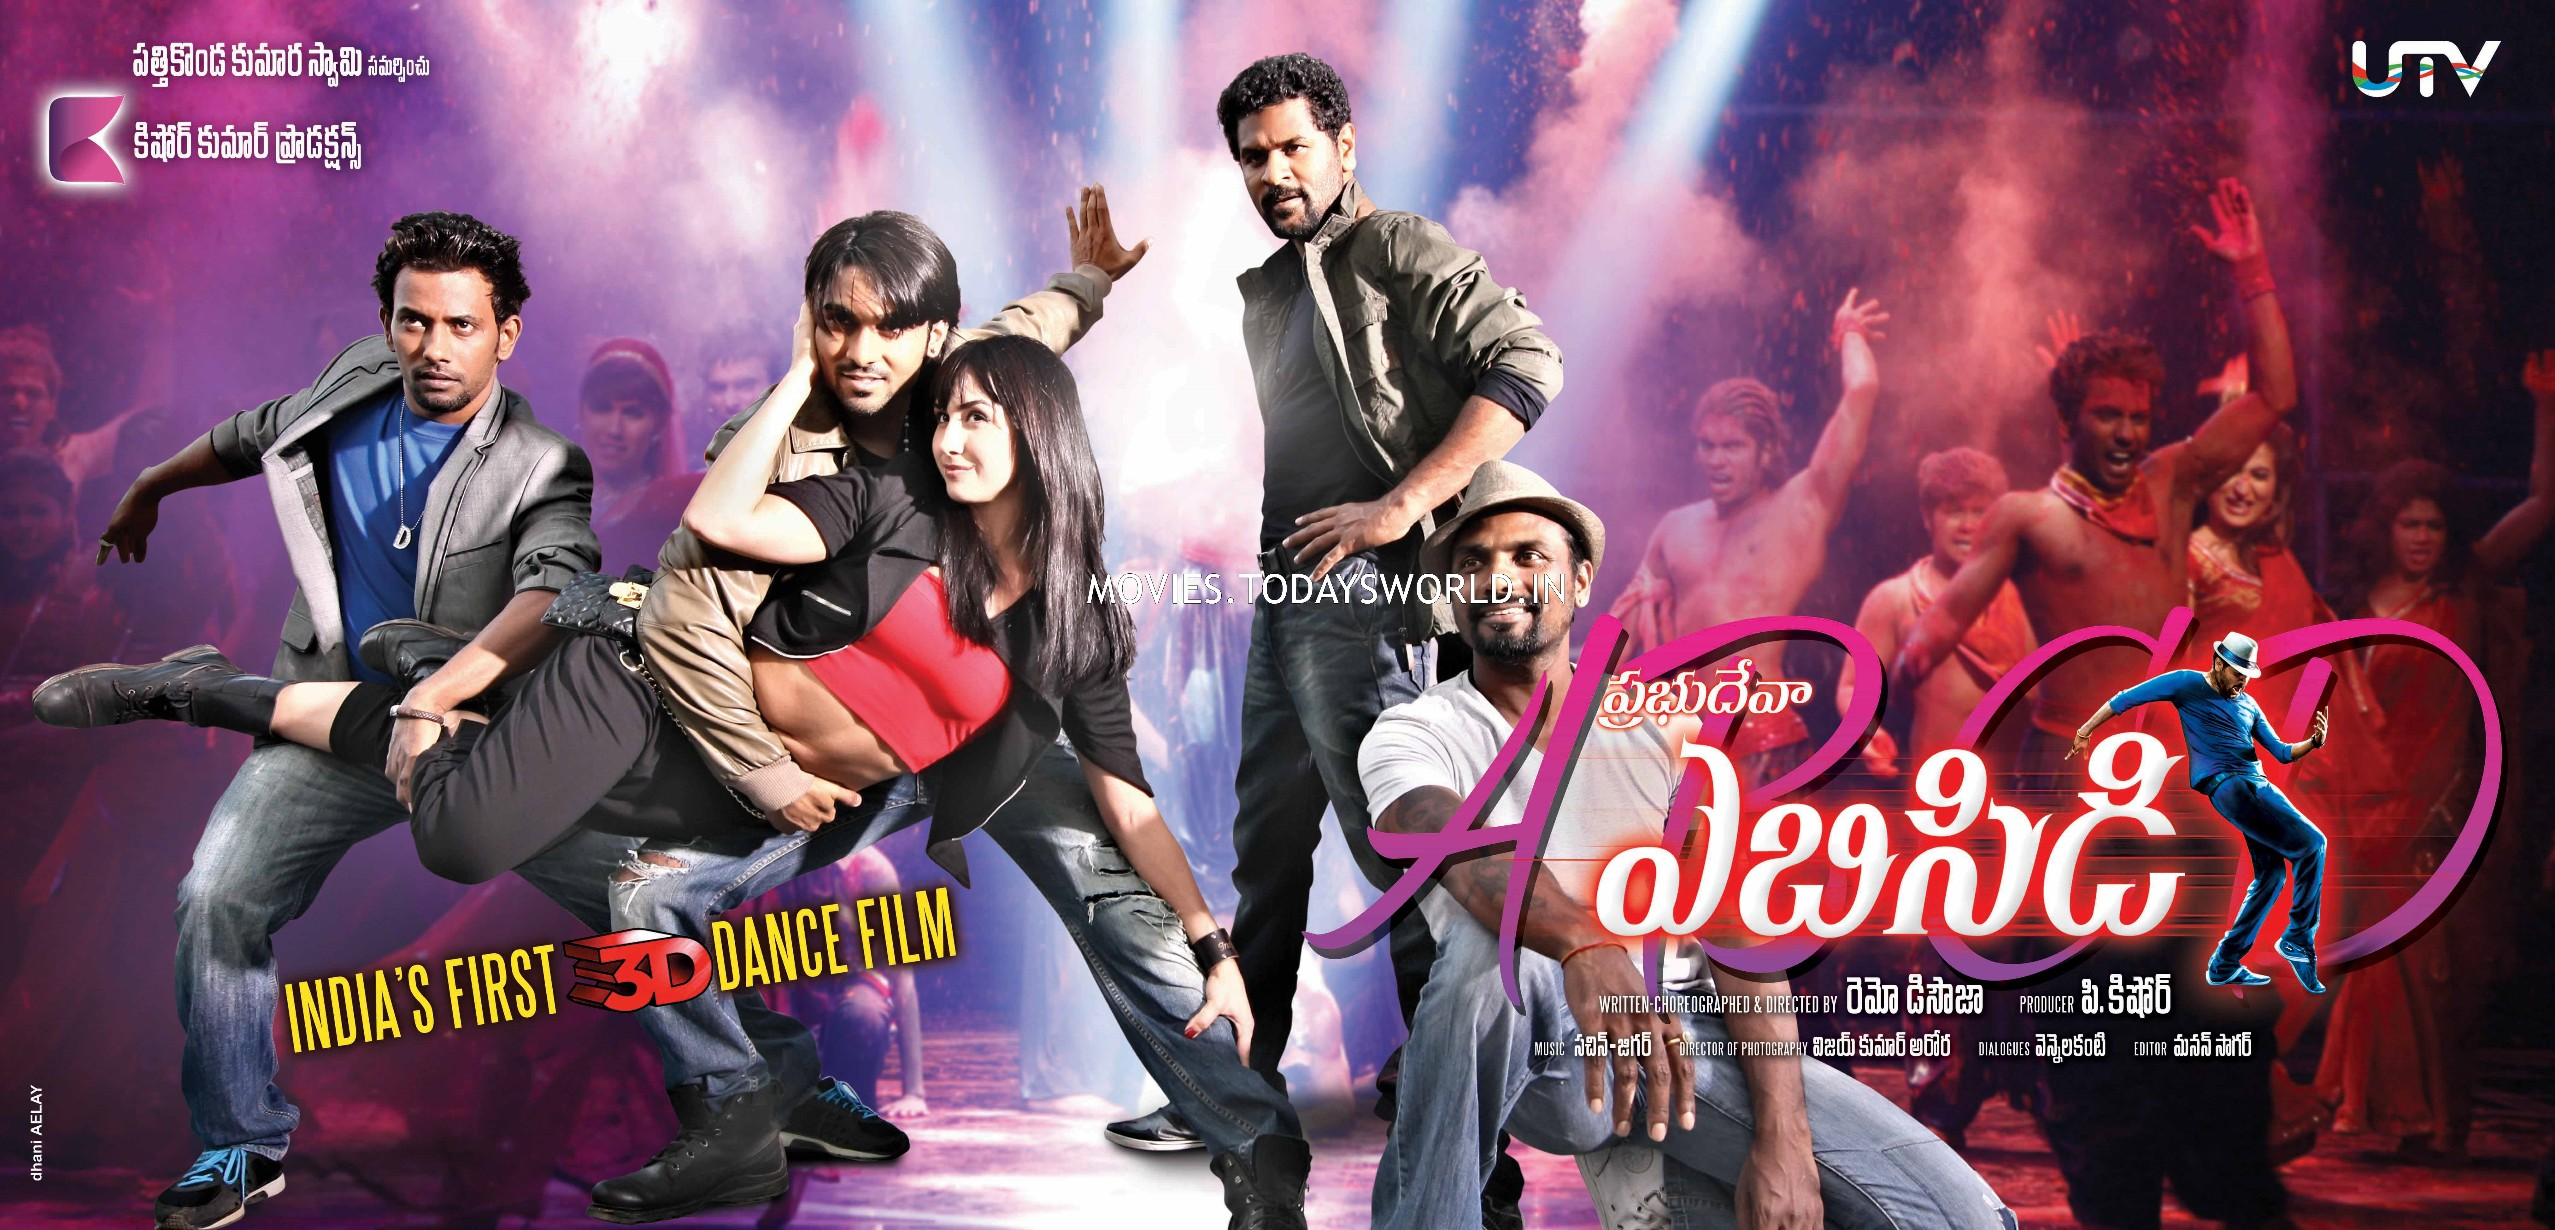 https://3.bp.blogspot.com/-PE2A7owtFyQ/UQEgKiLIV9I/AAAAAAAAXfE/EbsX8ayWoc4/s9000/ABCD+Movie+WallPapers,+ABCD+Telugu+Movie+Ultra+HD+Wallpapers,+HD+Posters+-+www. TodaysWorld.in + (4) .jpg